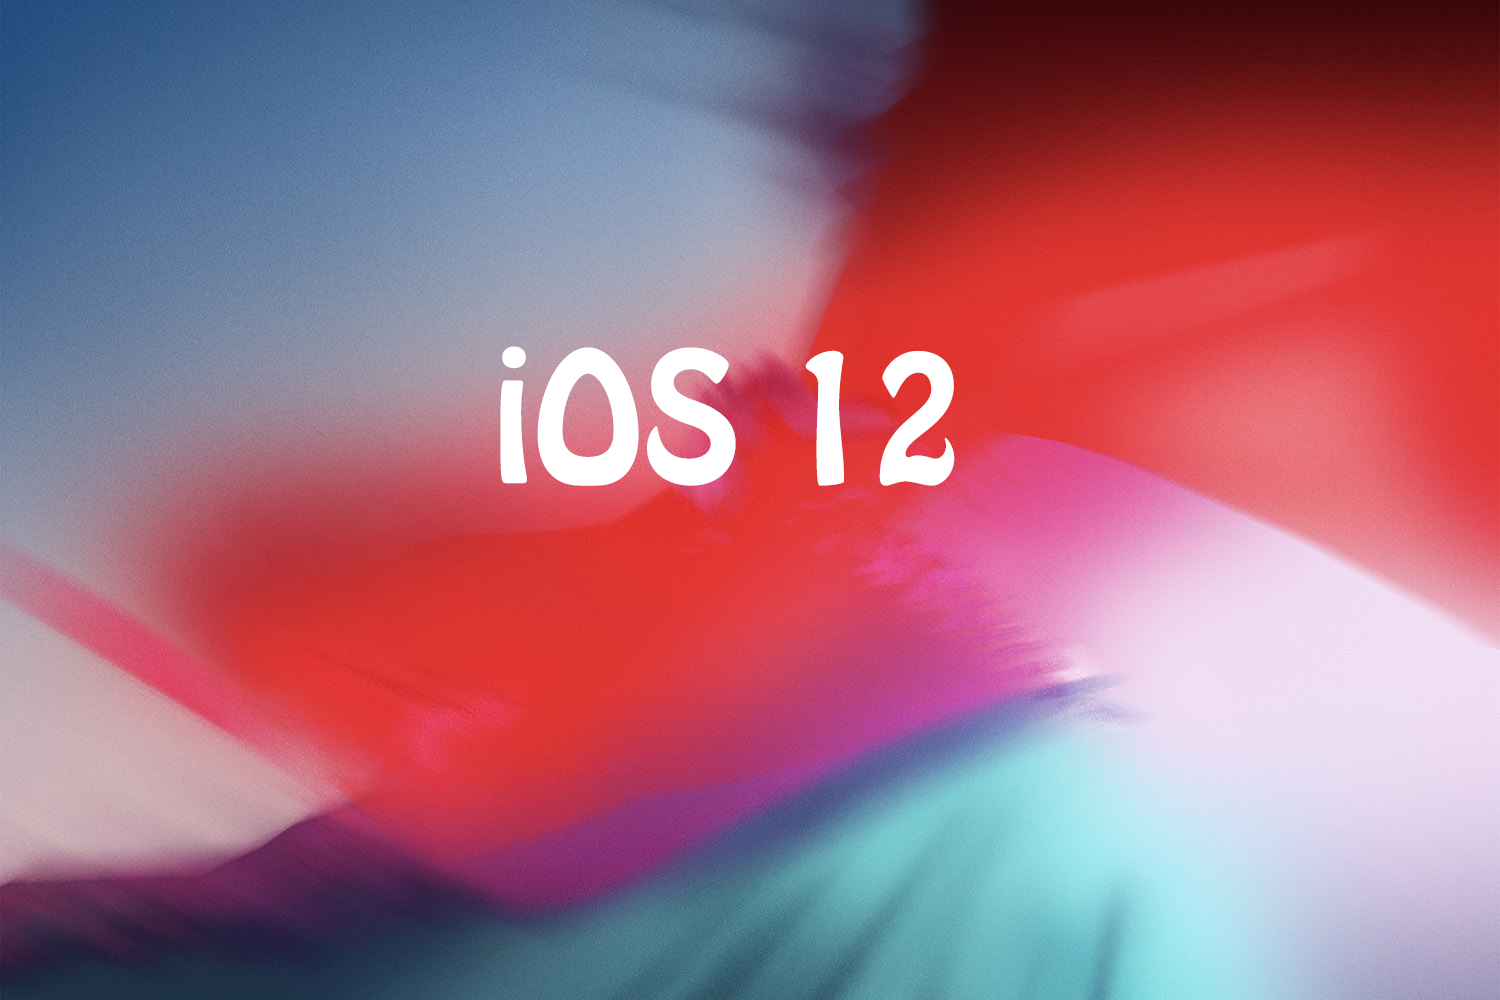 ios-12-1.png